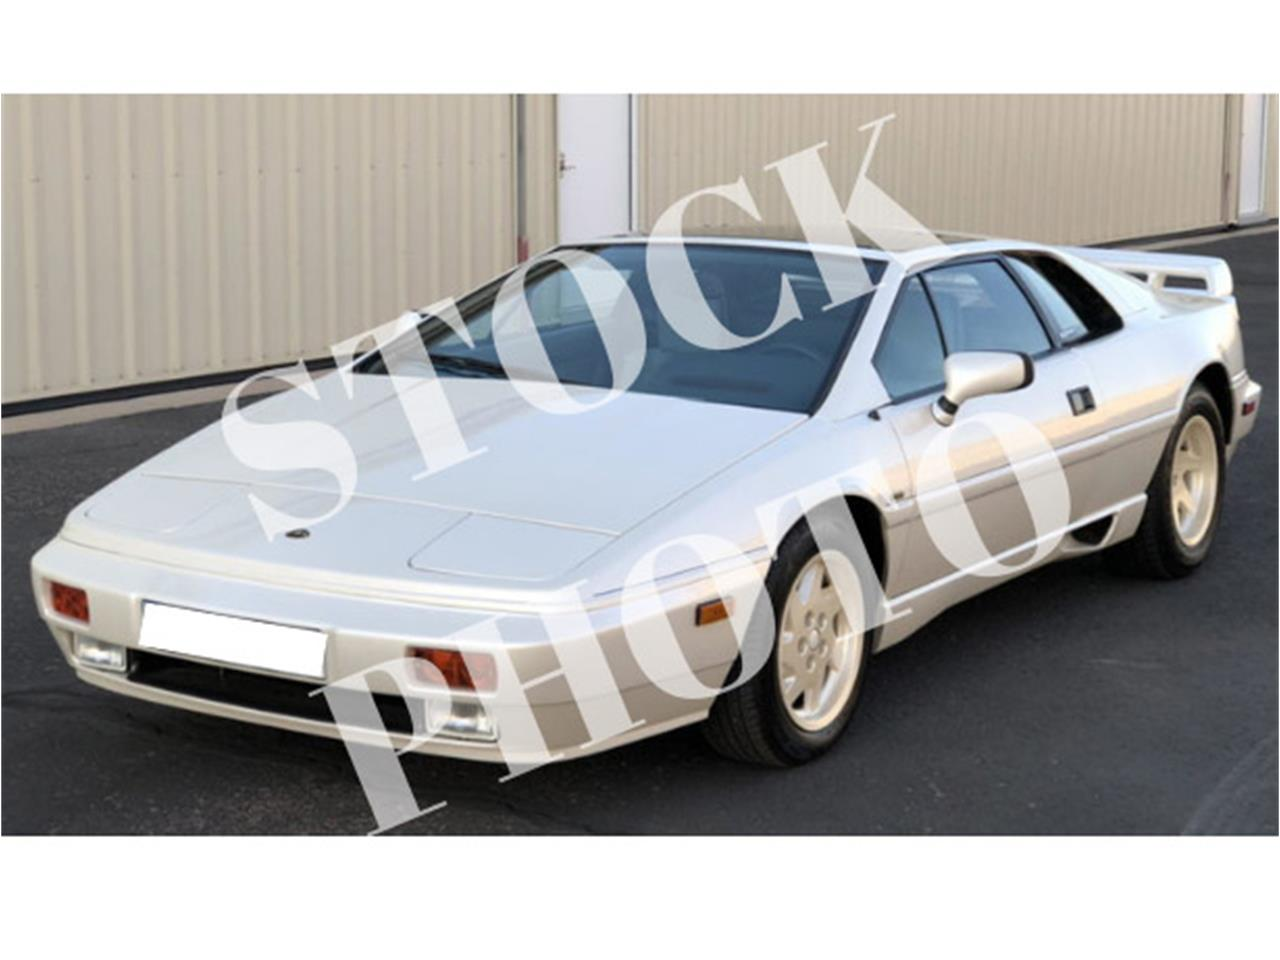 Esprit New 1988 Lotus Esprit For Sale Classiccars Cc 1175367